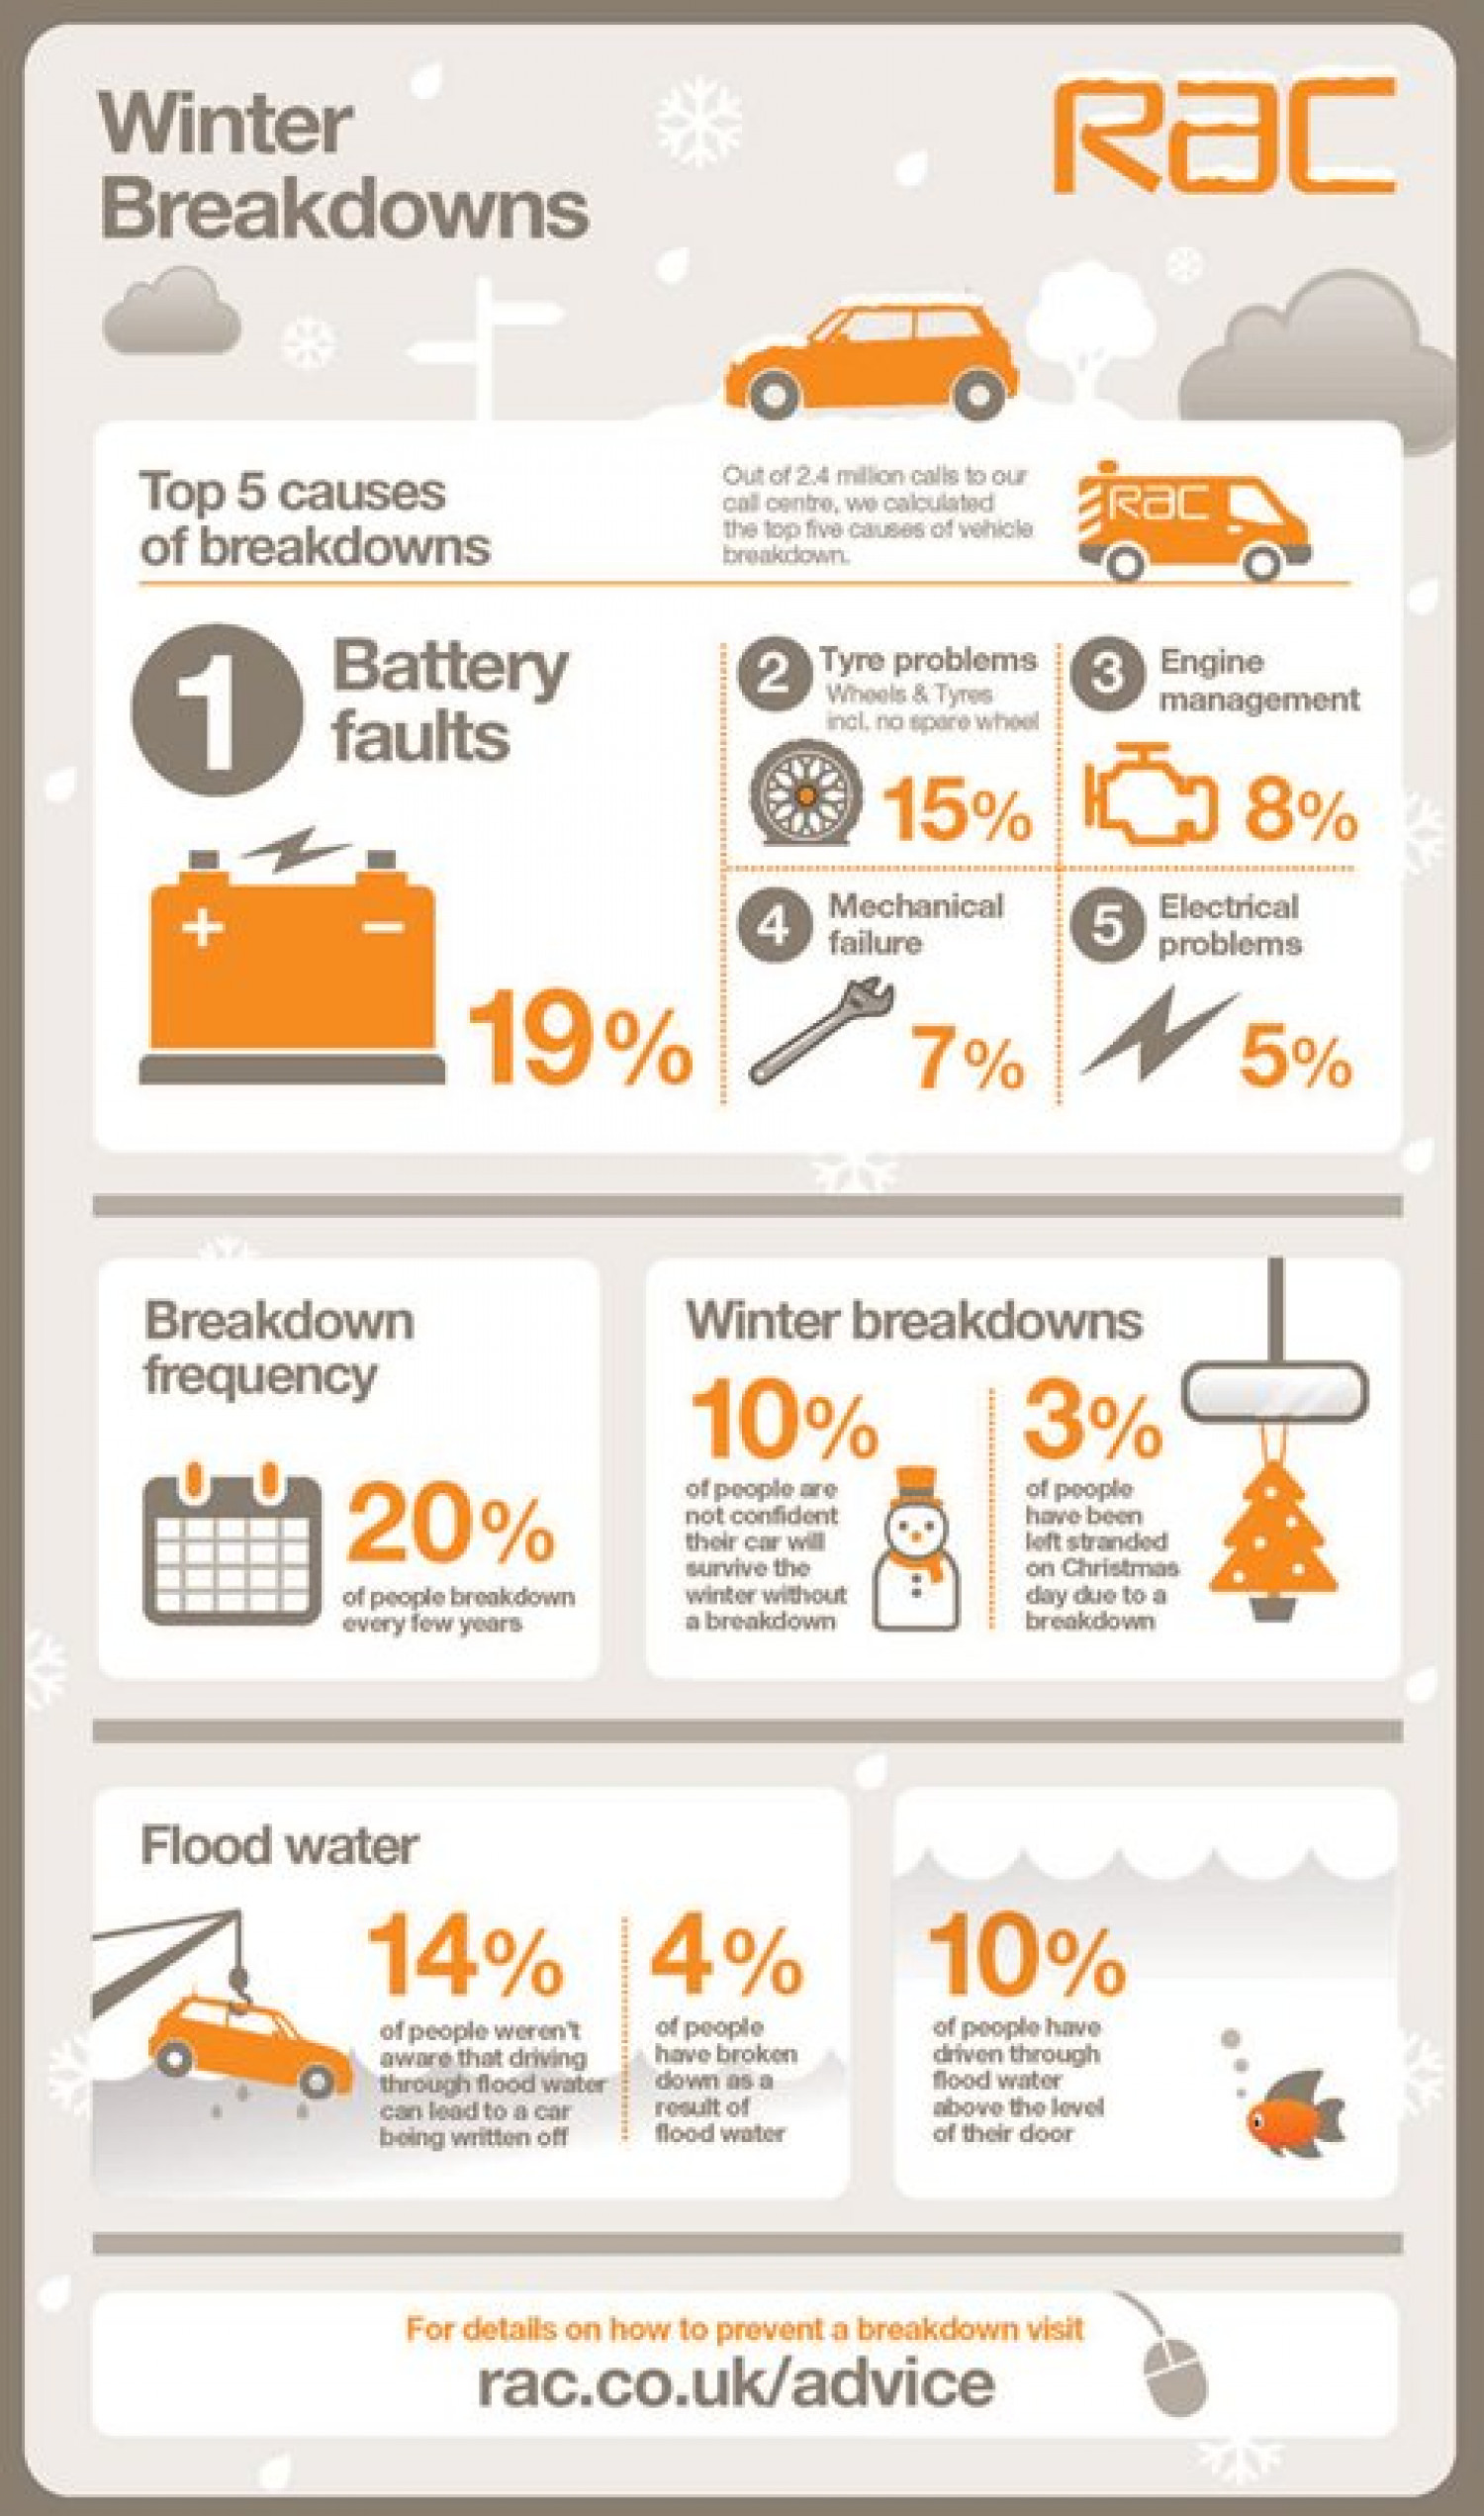 Winter Breakdowns Infographic